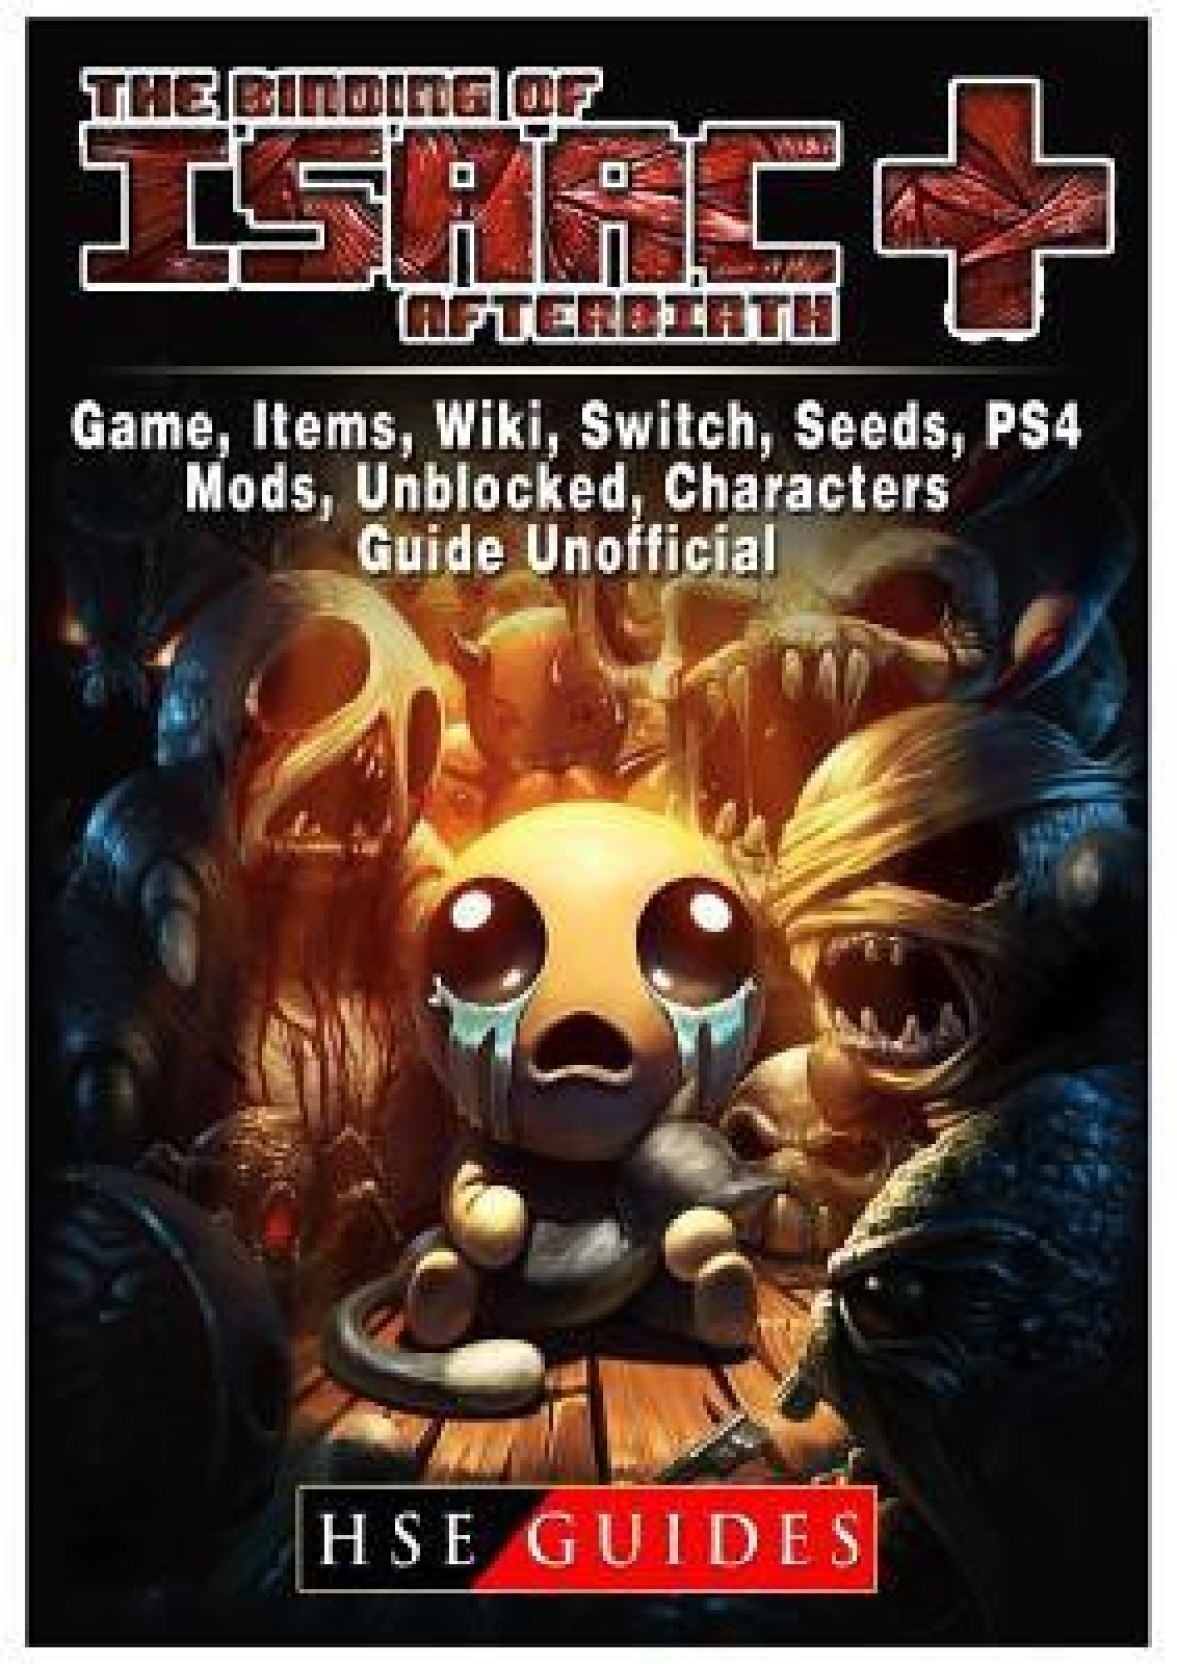 The Binding Of Isaac Afterbirth Plus Game Items Wiki Switch Nintendo Add To Cart